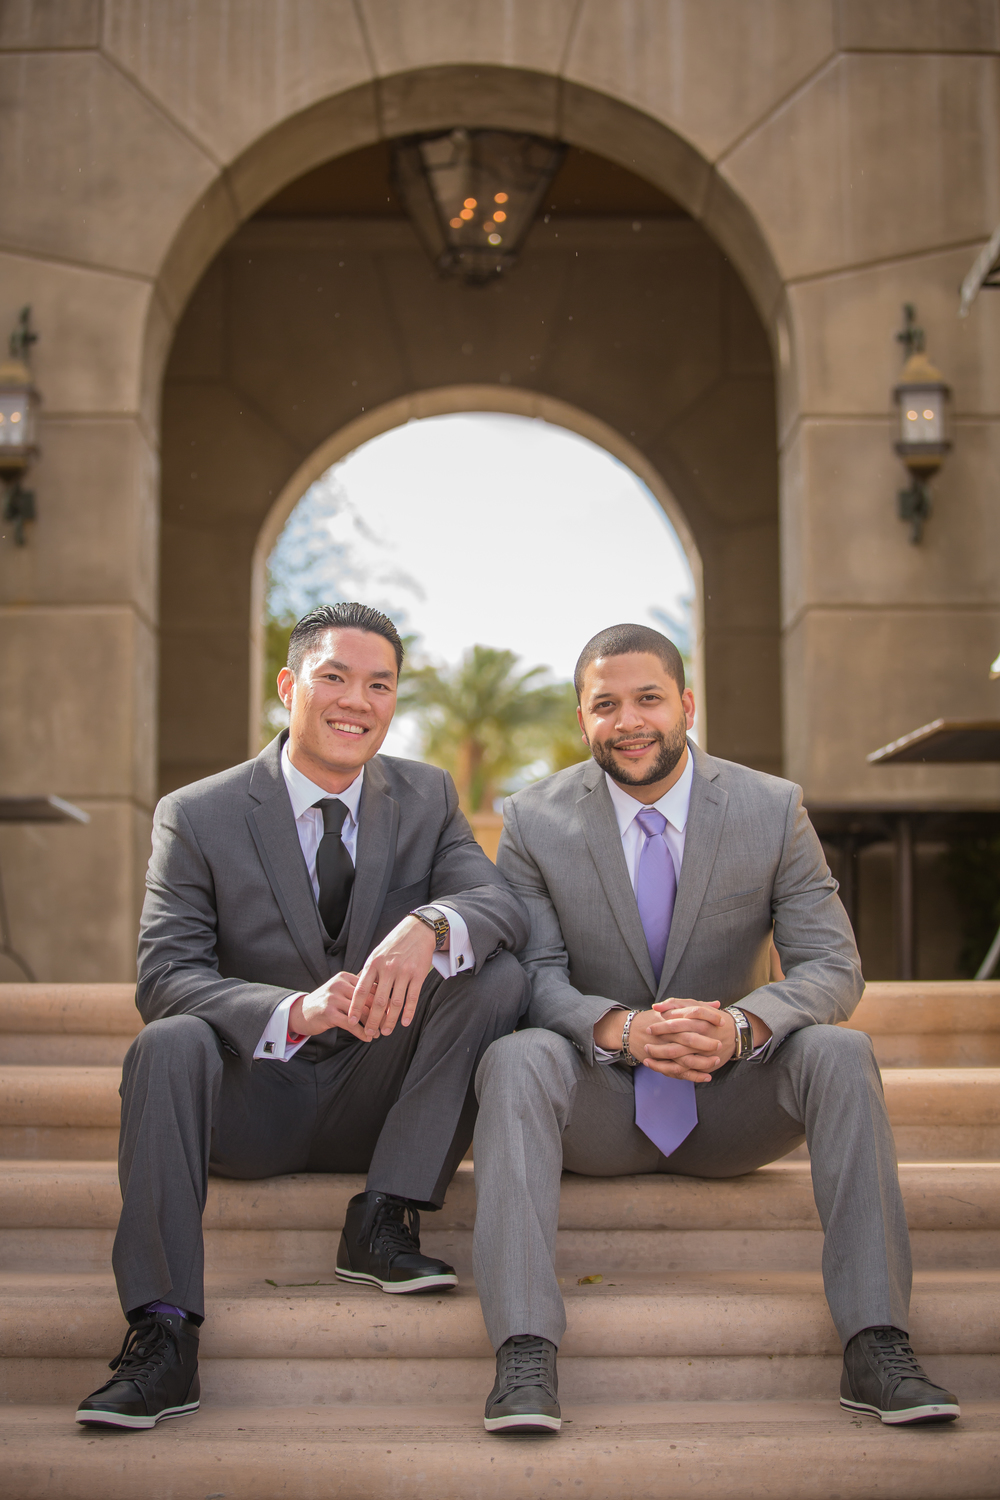 Michael and his best man were dapper in their grey suits.   Las Vegas Wedding at Siena Golf Club  |  Photography by Ella Gagiano  |  Las Wedding Planner Andrea Eppolito